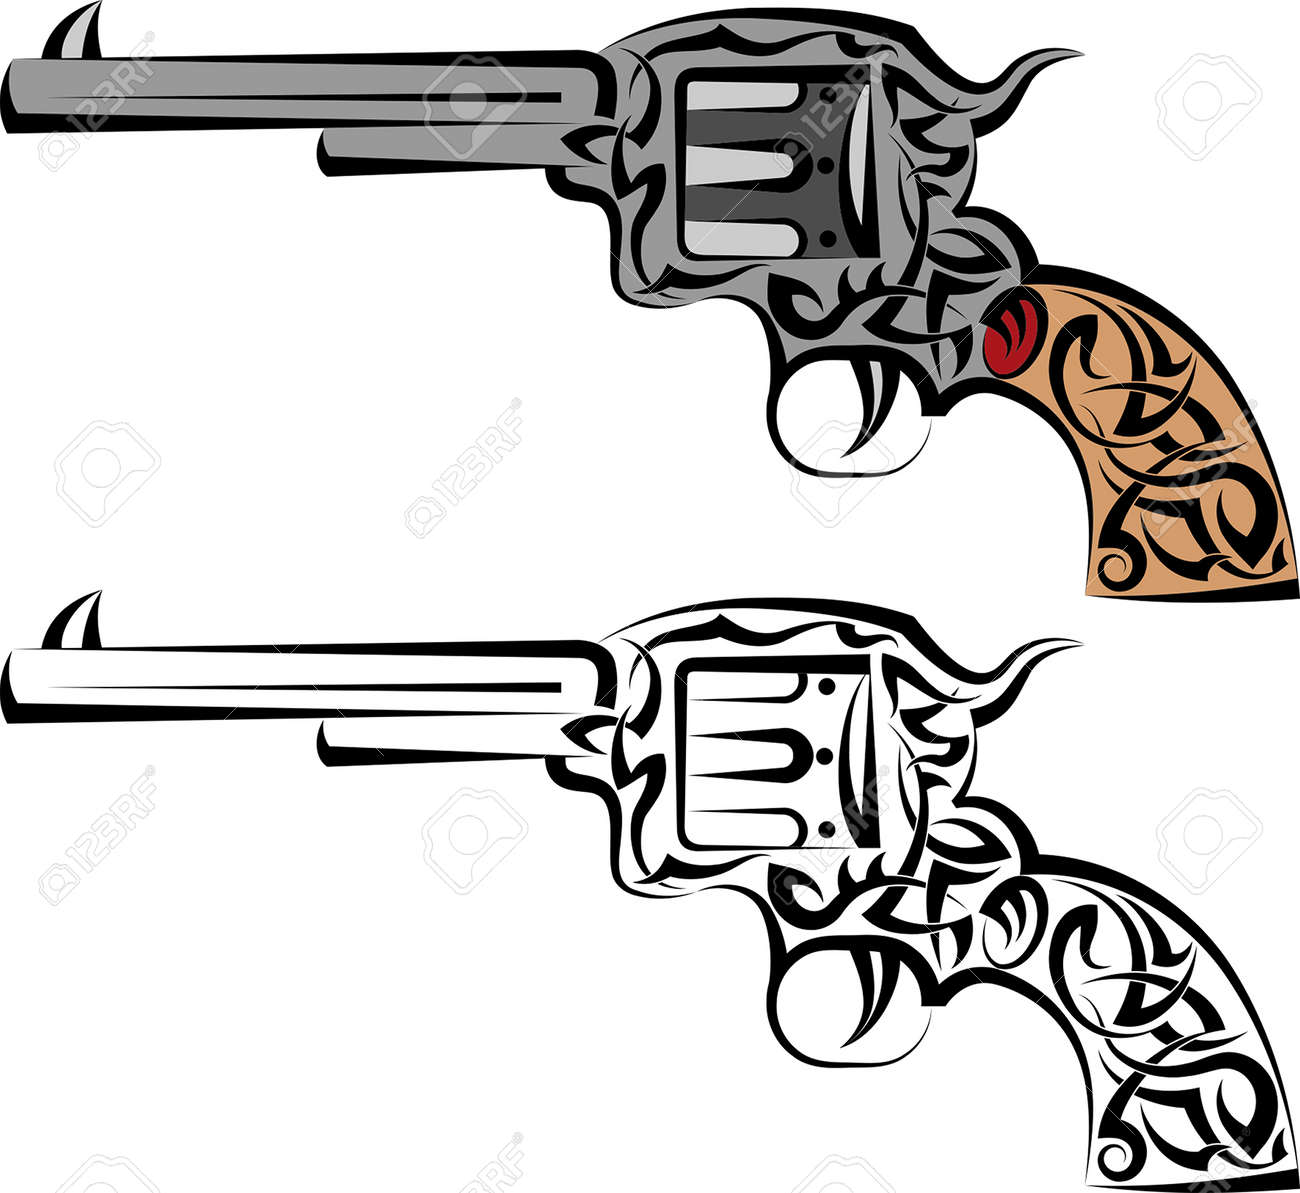 tattoo gun design vector art royalty free cliparts vectors and stock illustration image 46346498 tattoo gun design vector art